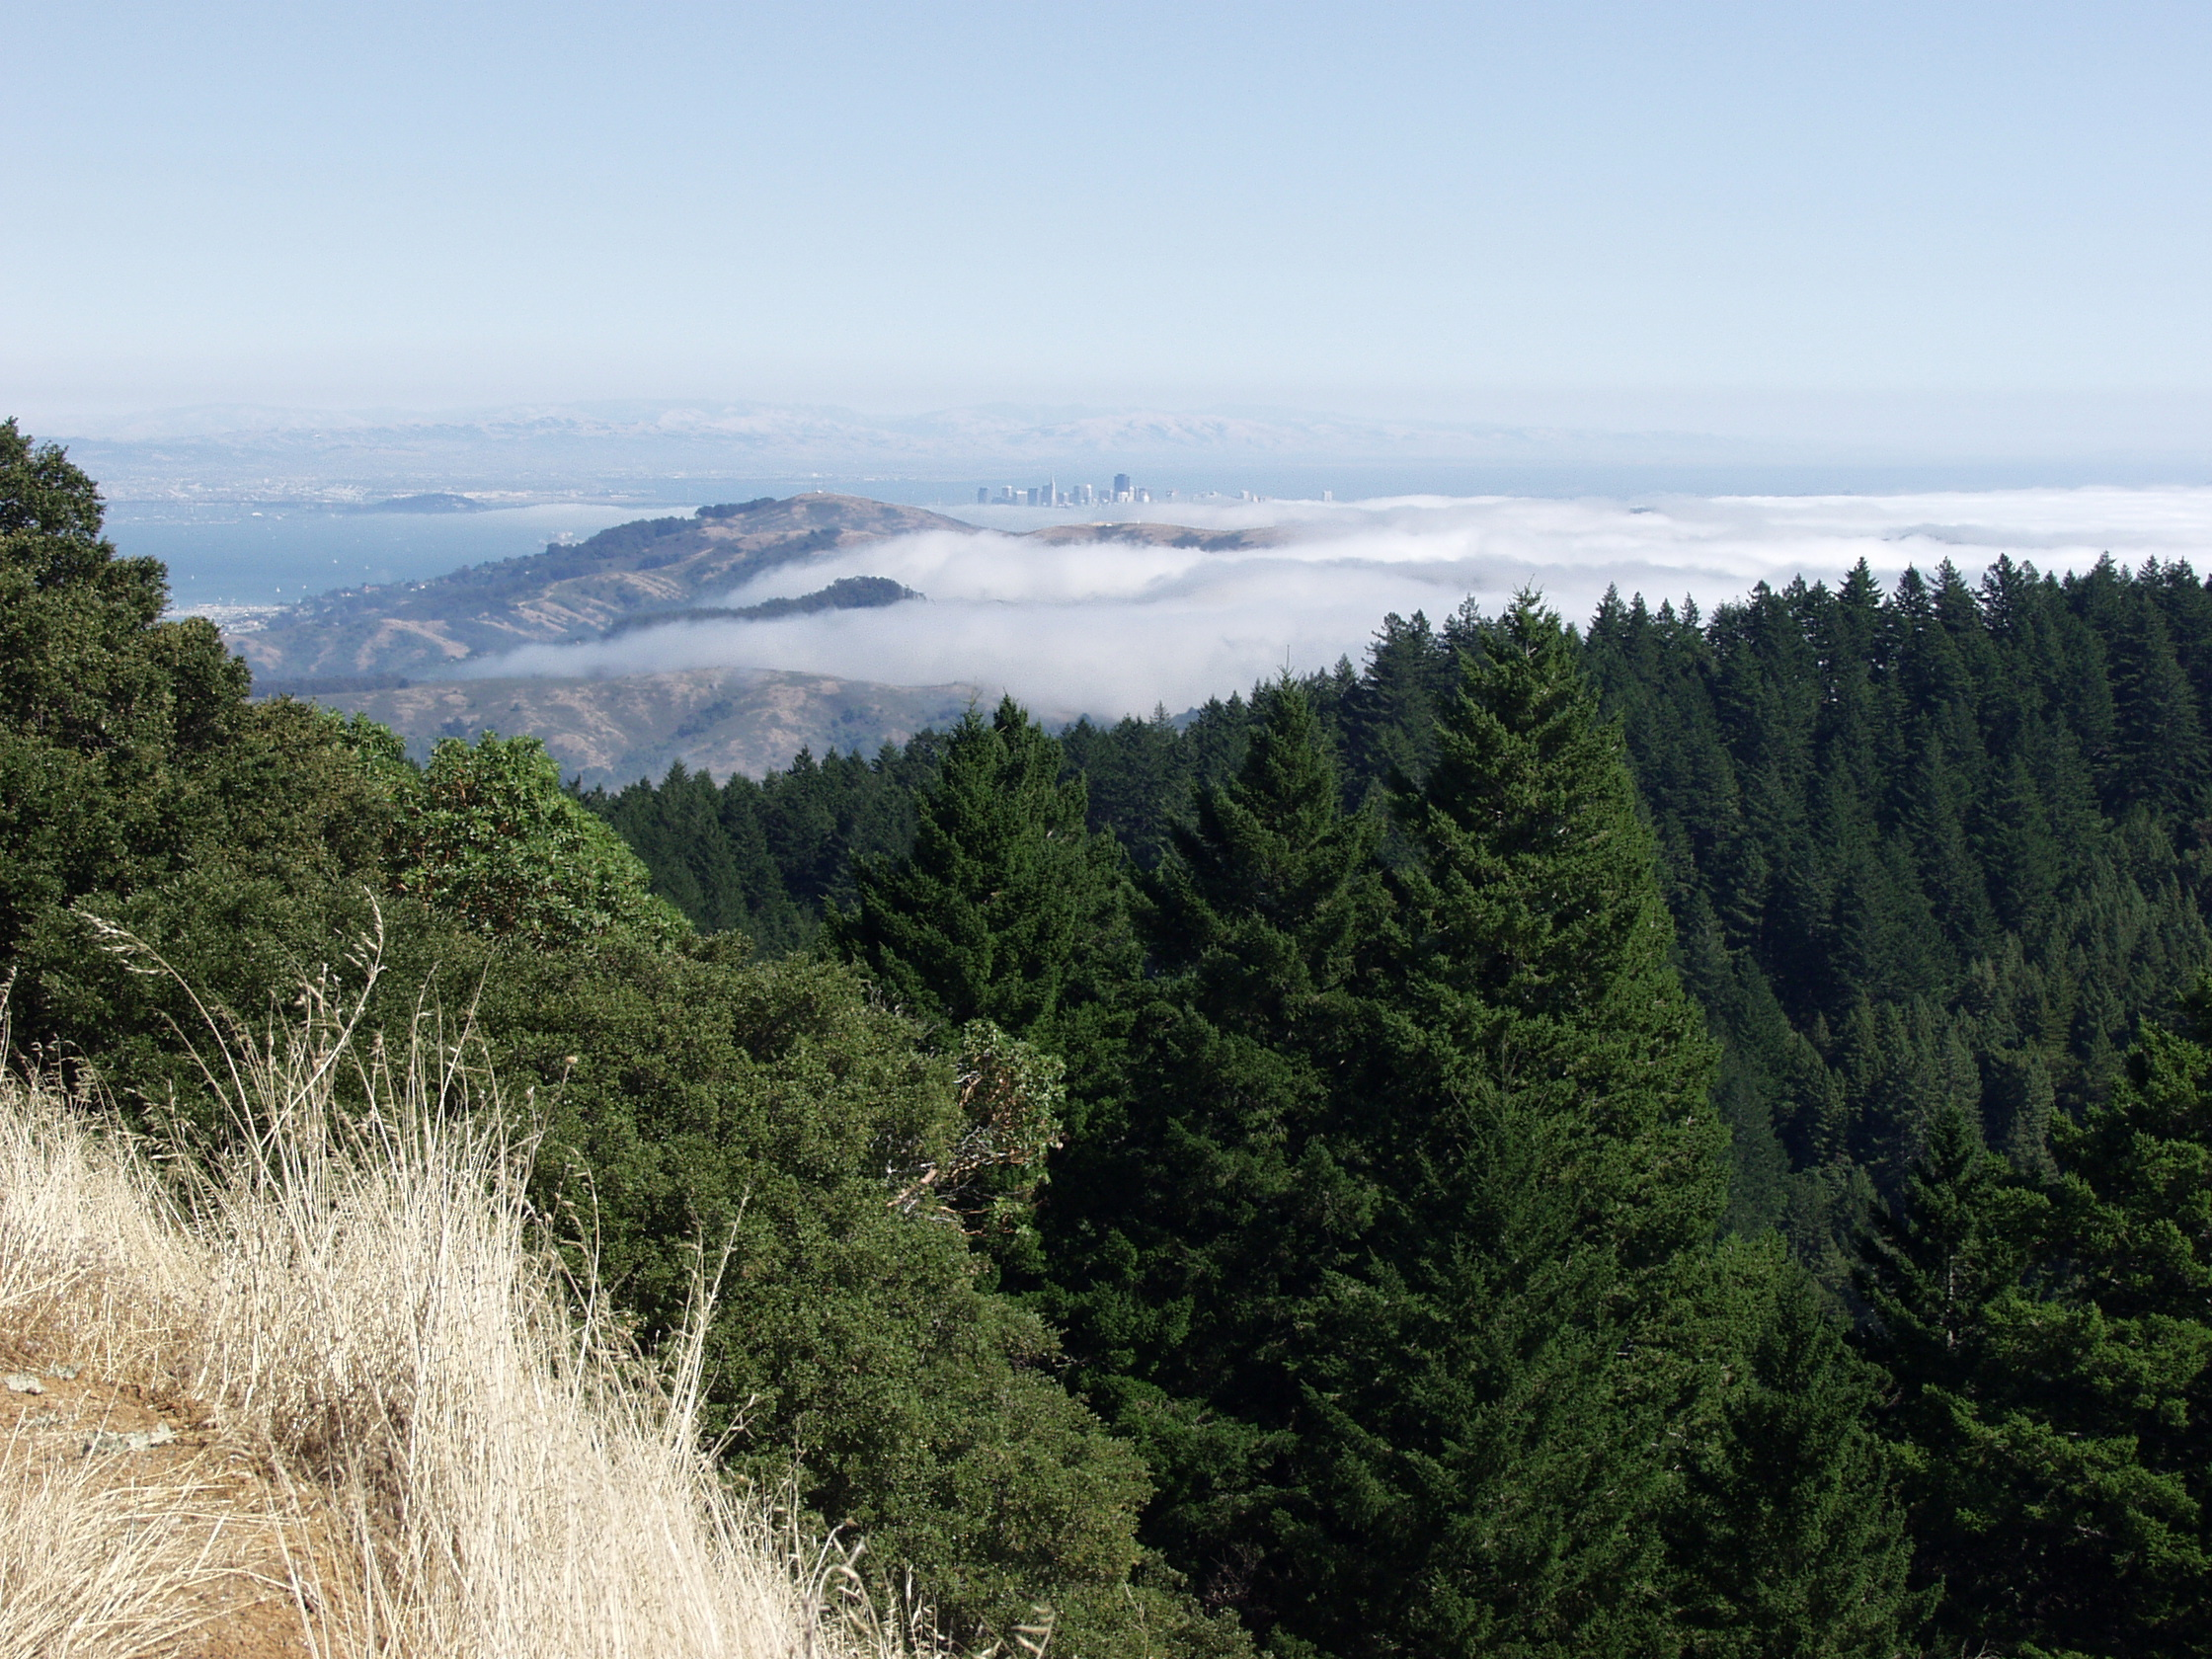 View of the fog in San Francisco from Mount Tamalpais